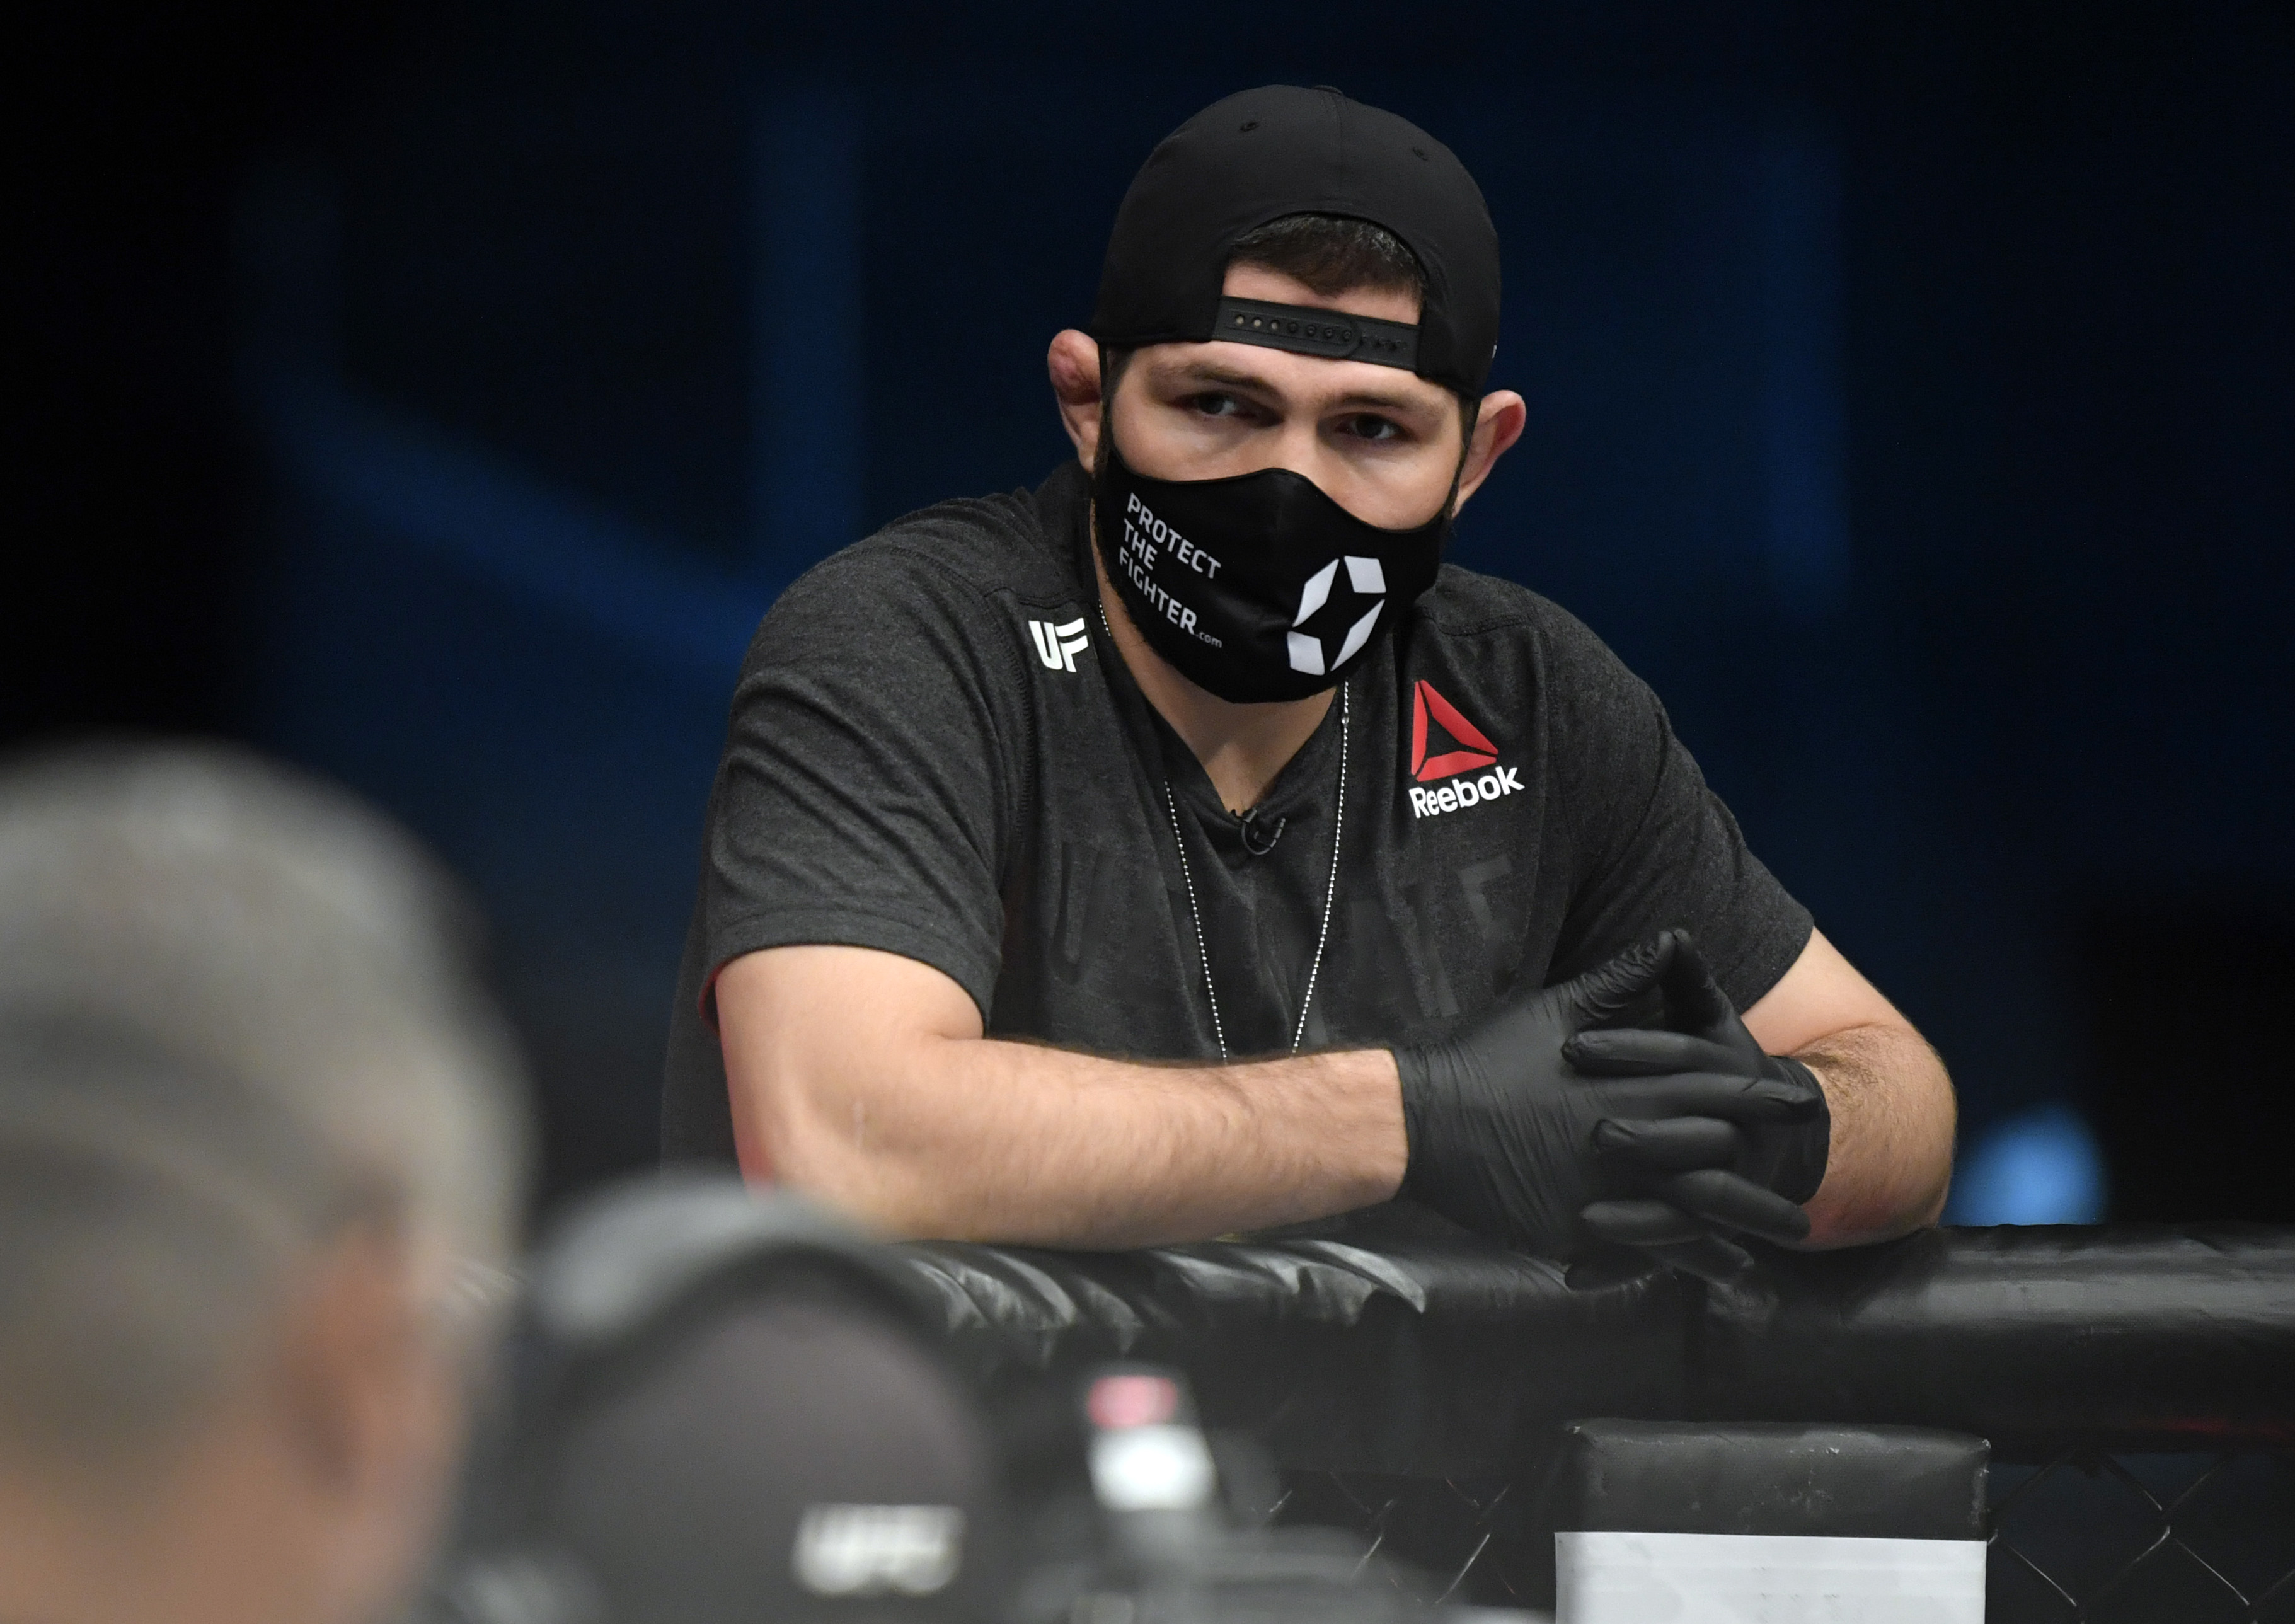 MMA fighter Khabib Nurmagomedov at a 2021 UFC Fight Night event